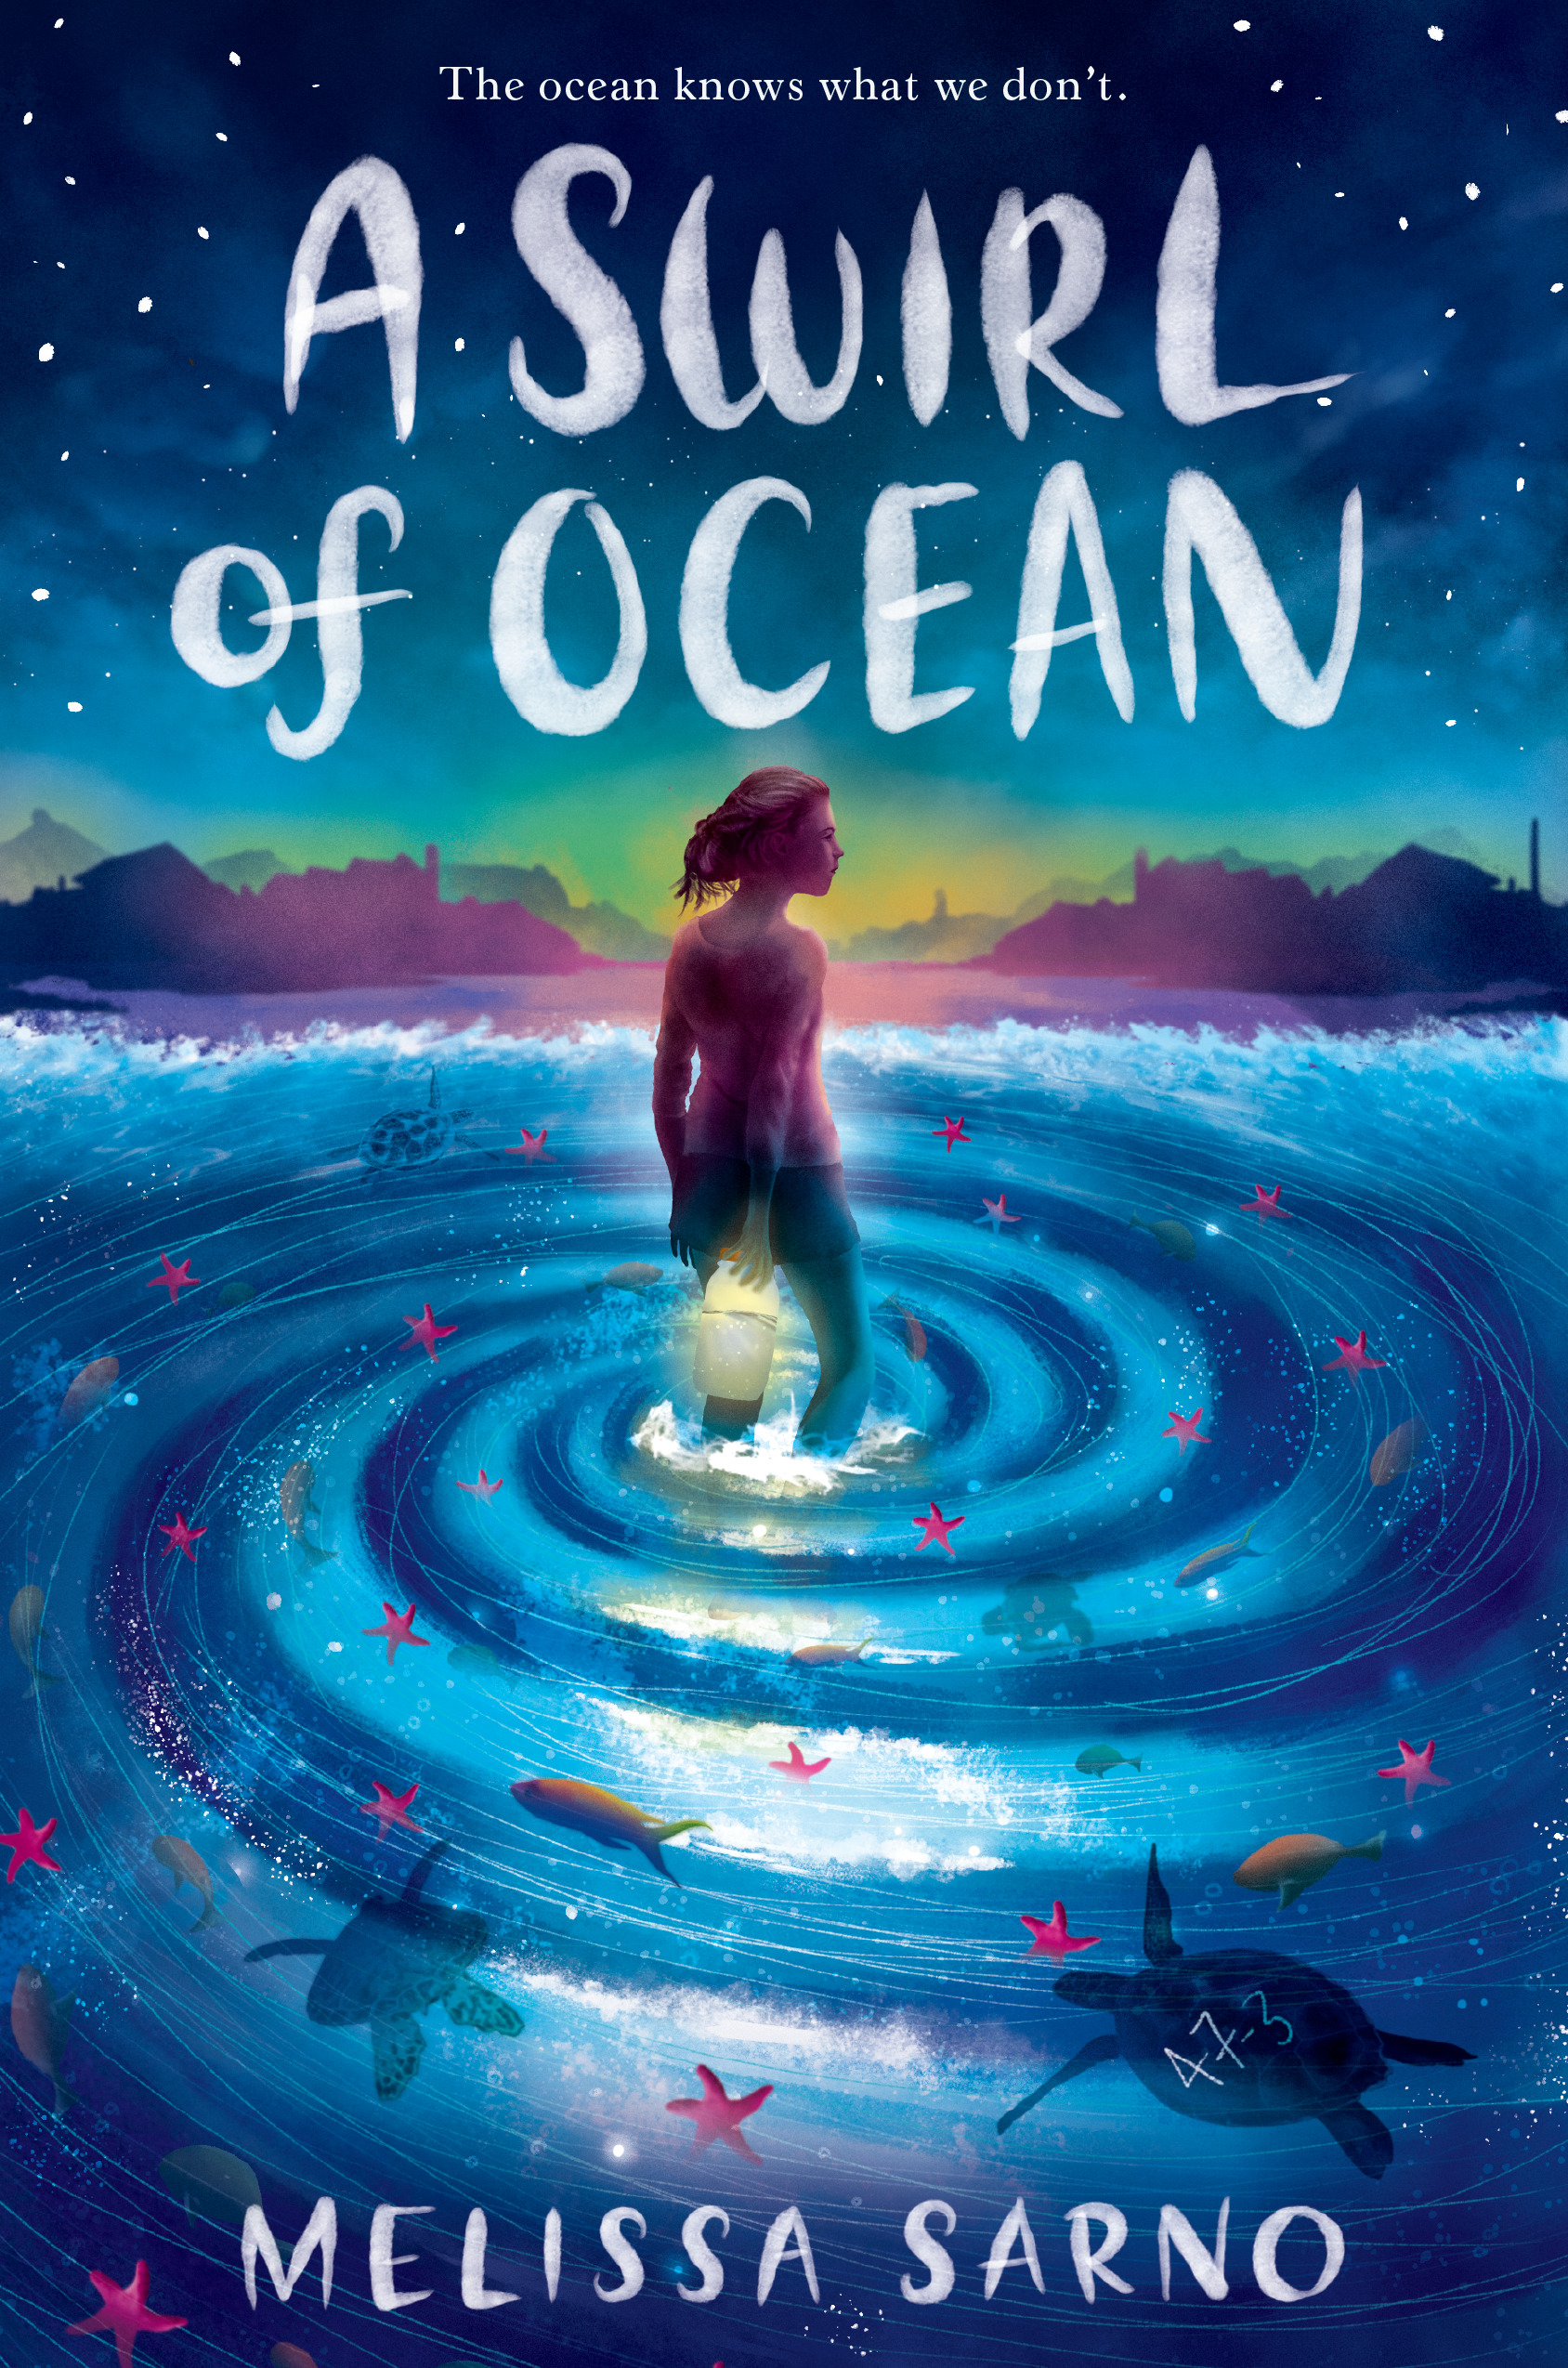 A Swirl of Ocean – A Children's Middle Grade Book By MELISSA SARNO